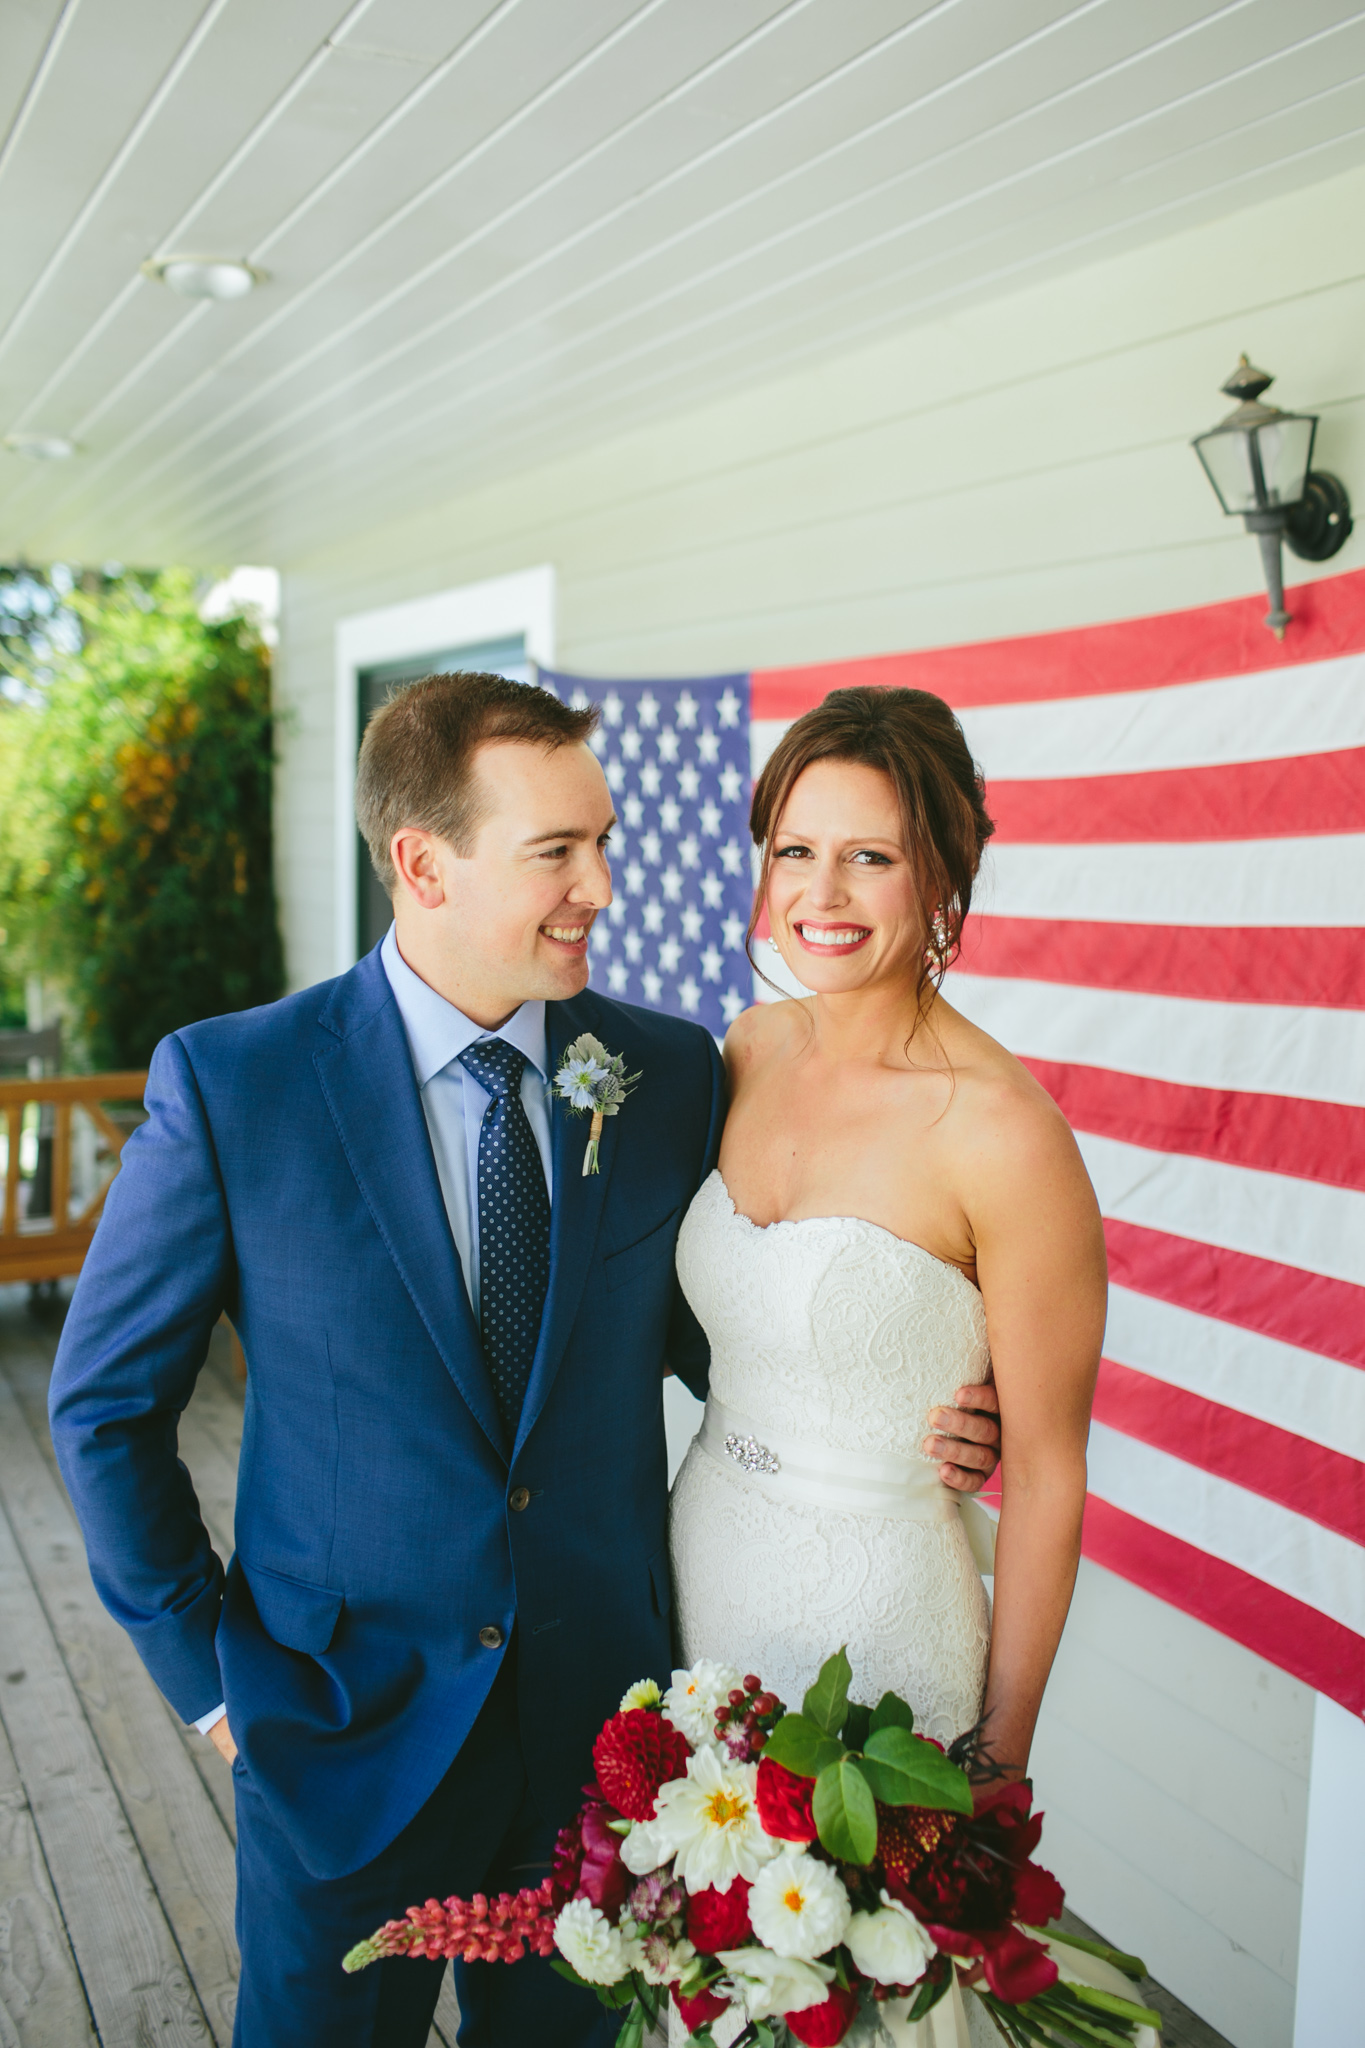 Kate+Taylor-BLOG-WED_KellyBoitano-29